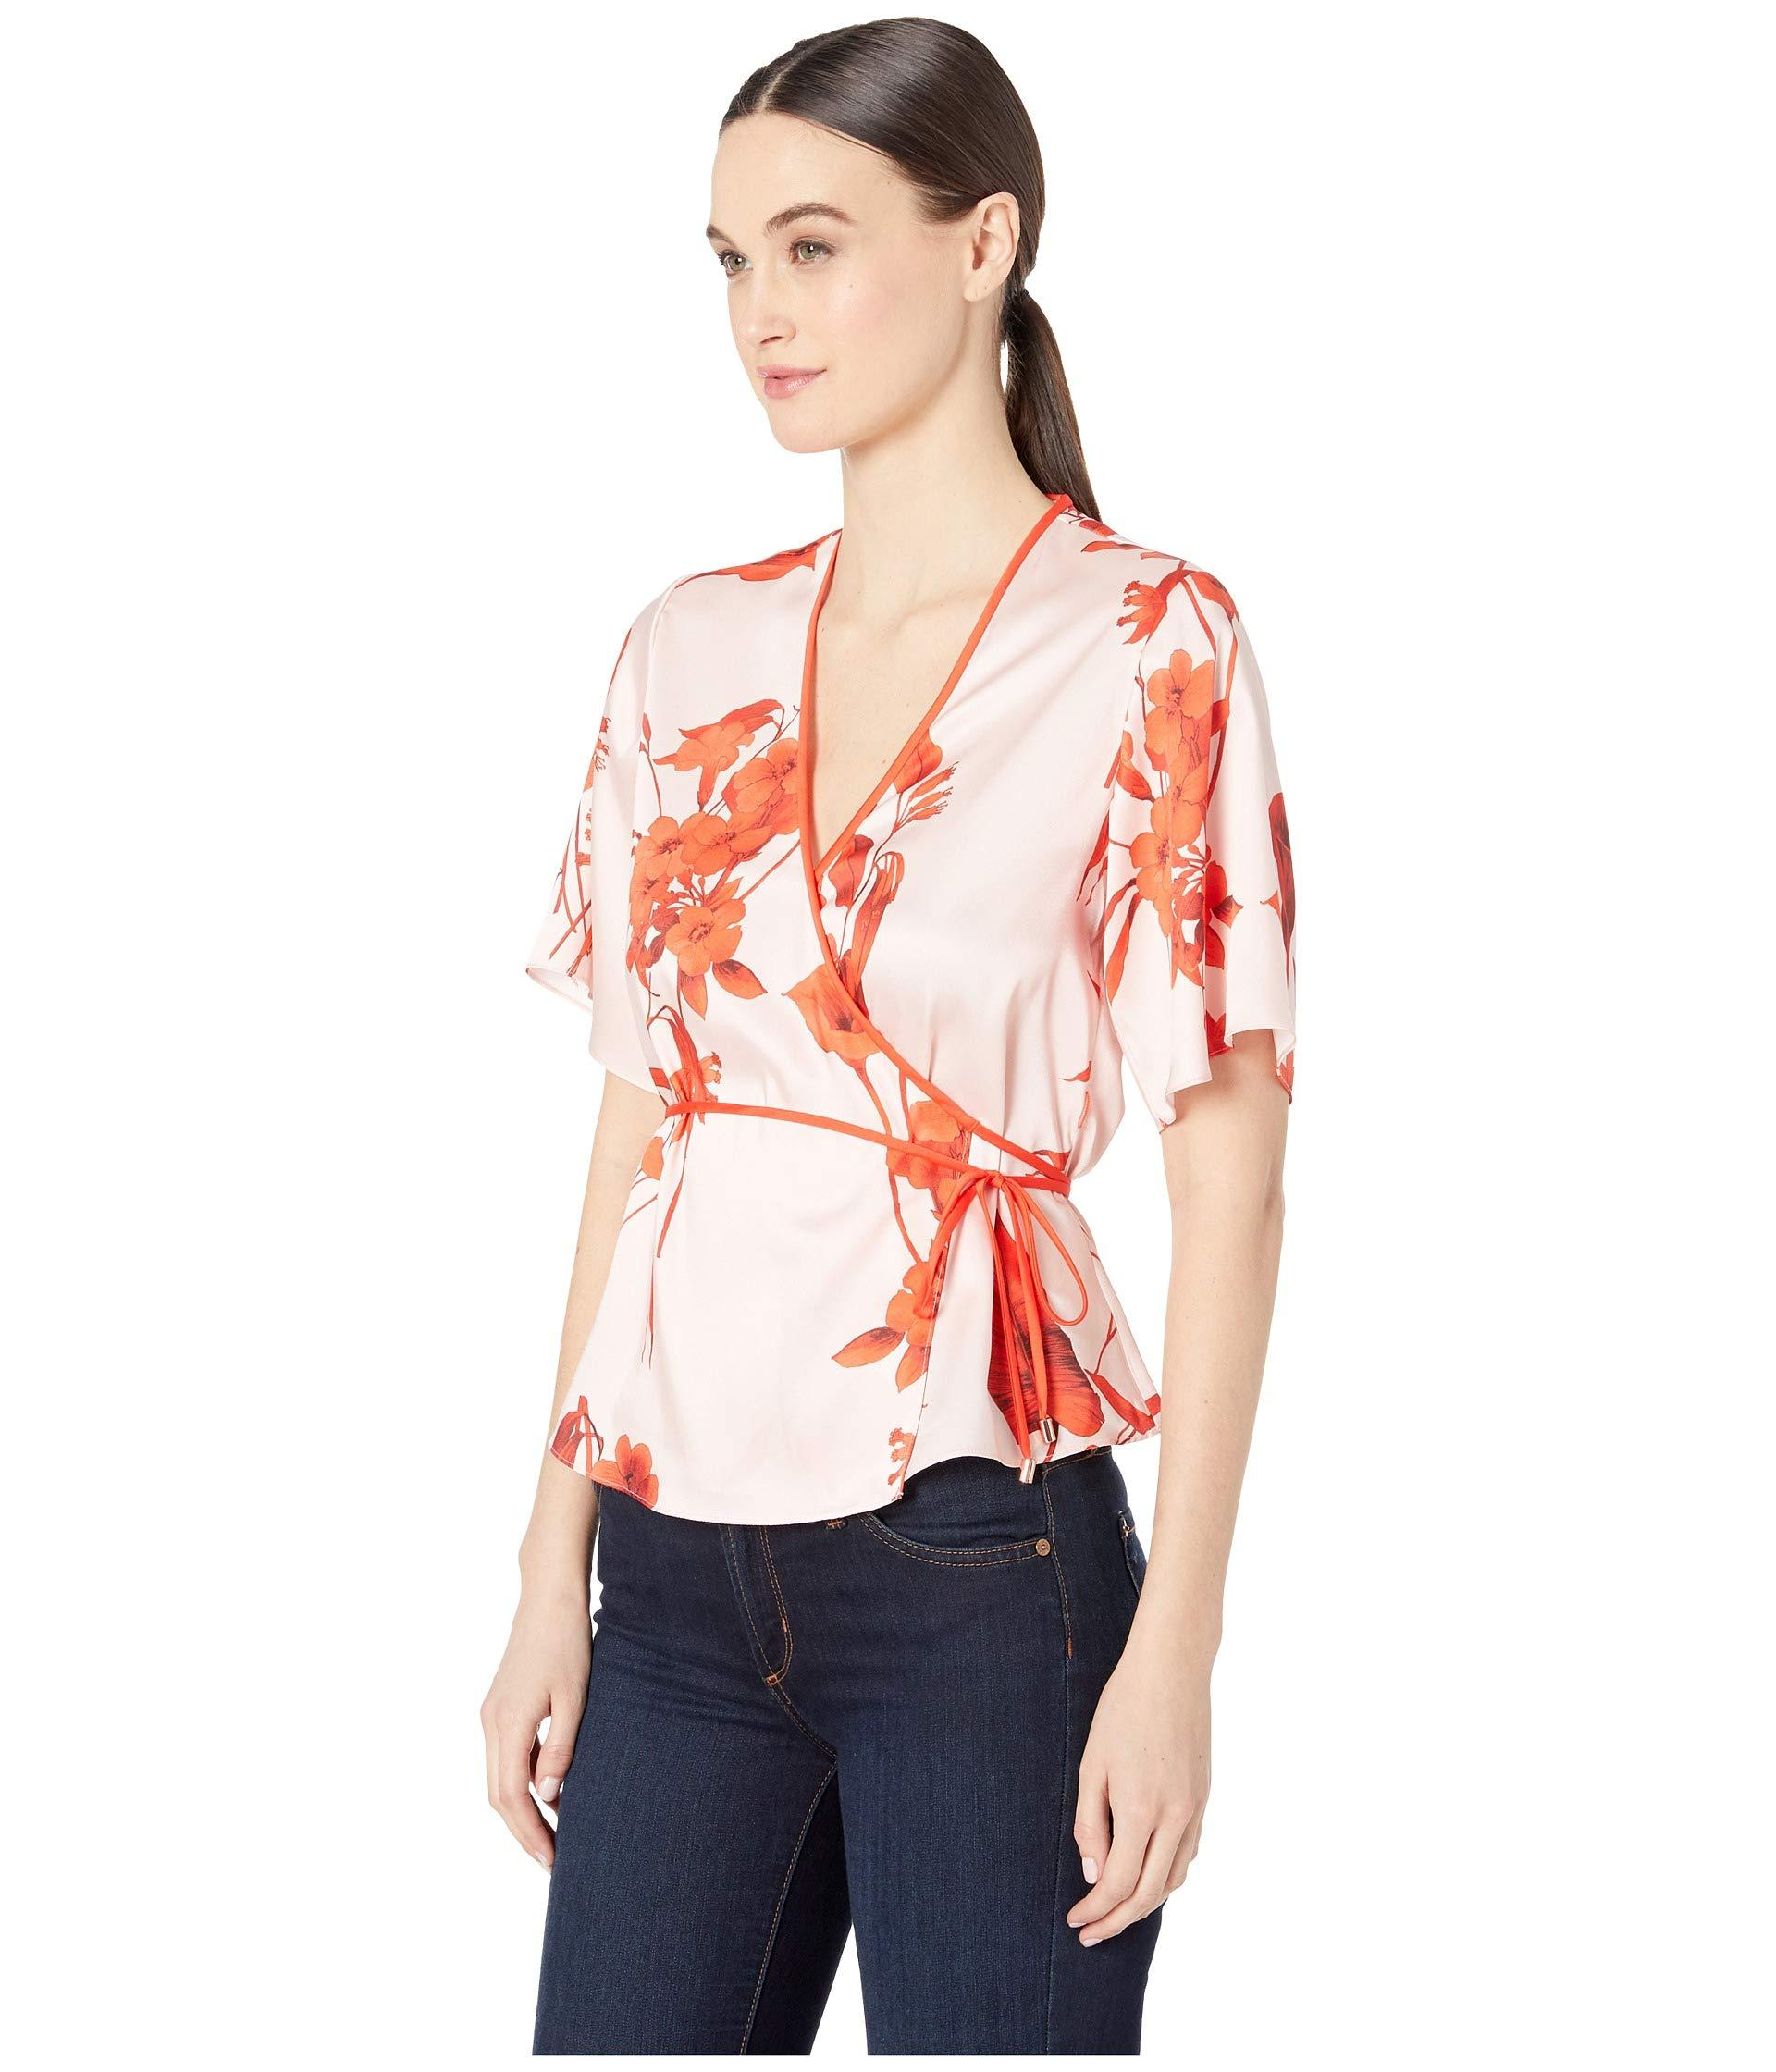 44bbd48bdf7f2 Lyst - Ted Baker Melonyy Blouse (pale Pink) Women s Blouse in Pink